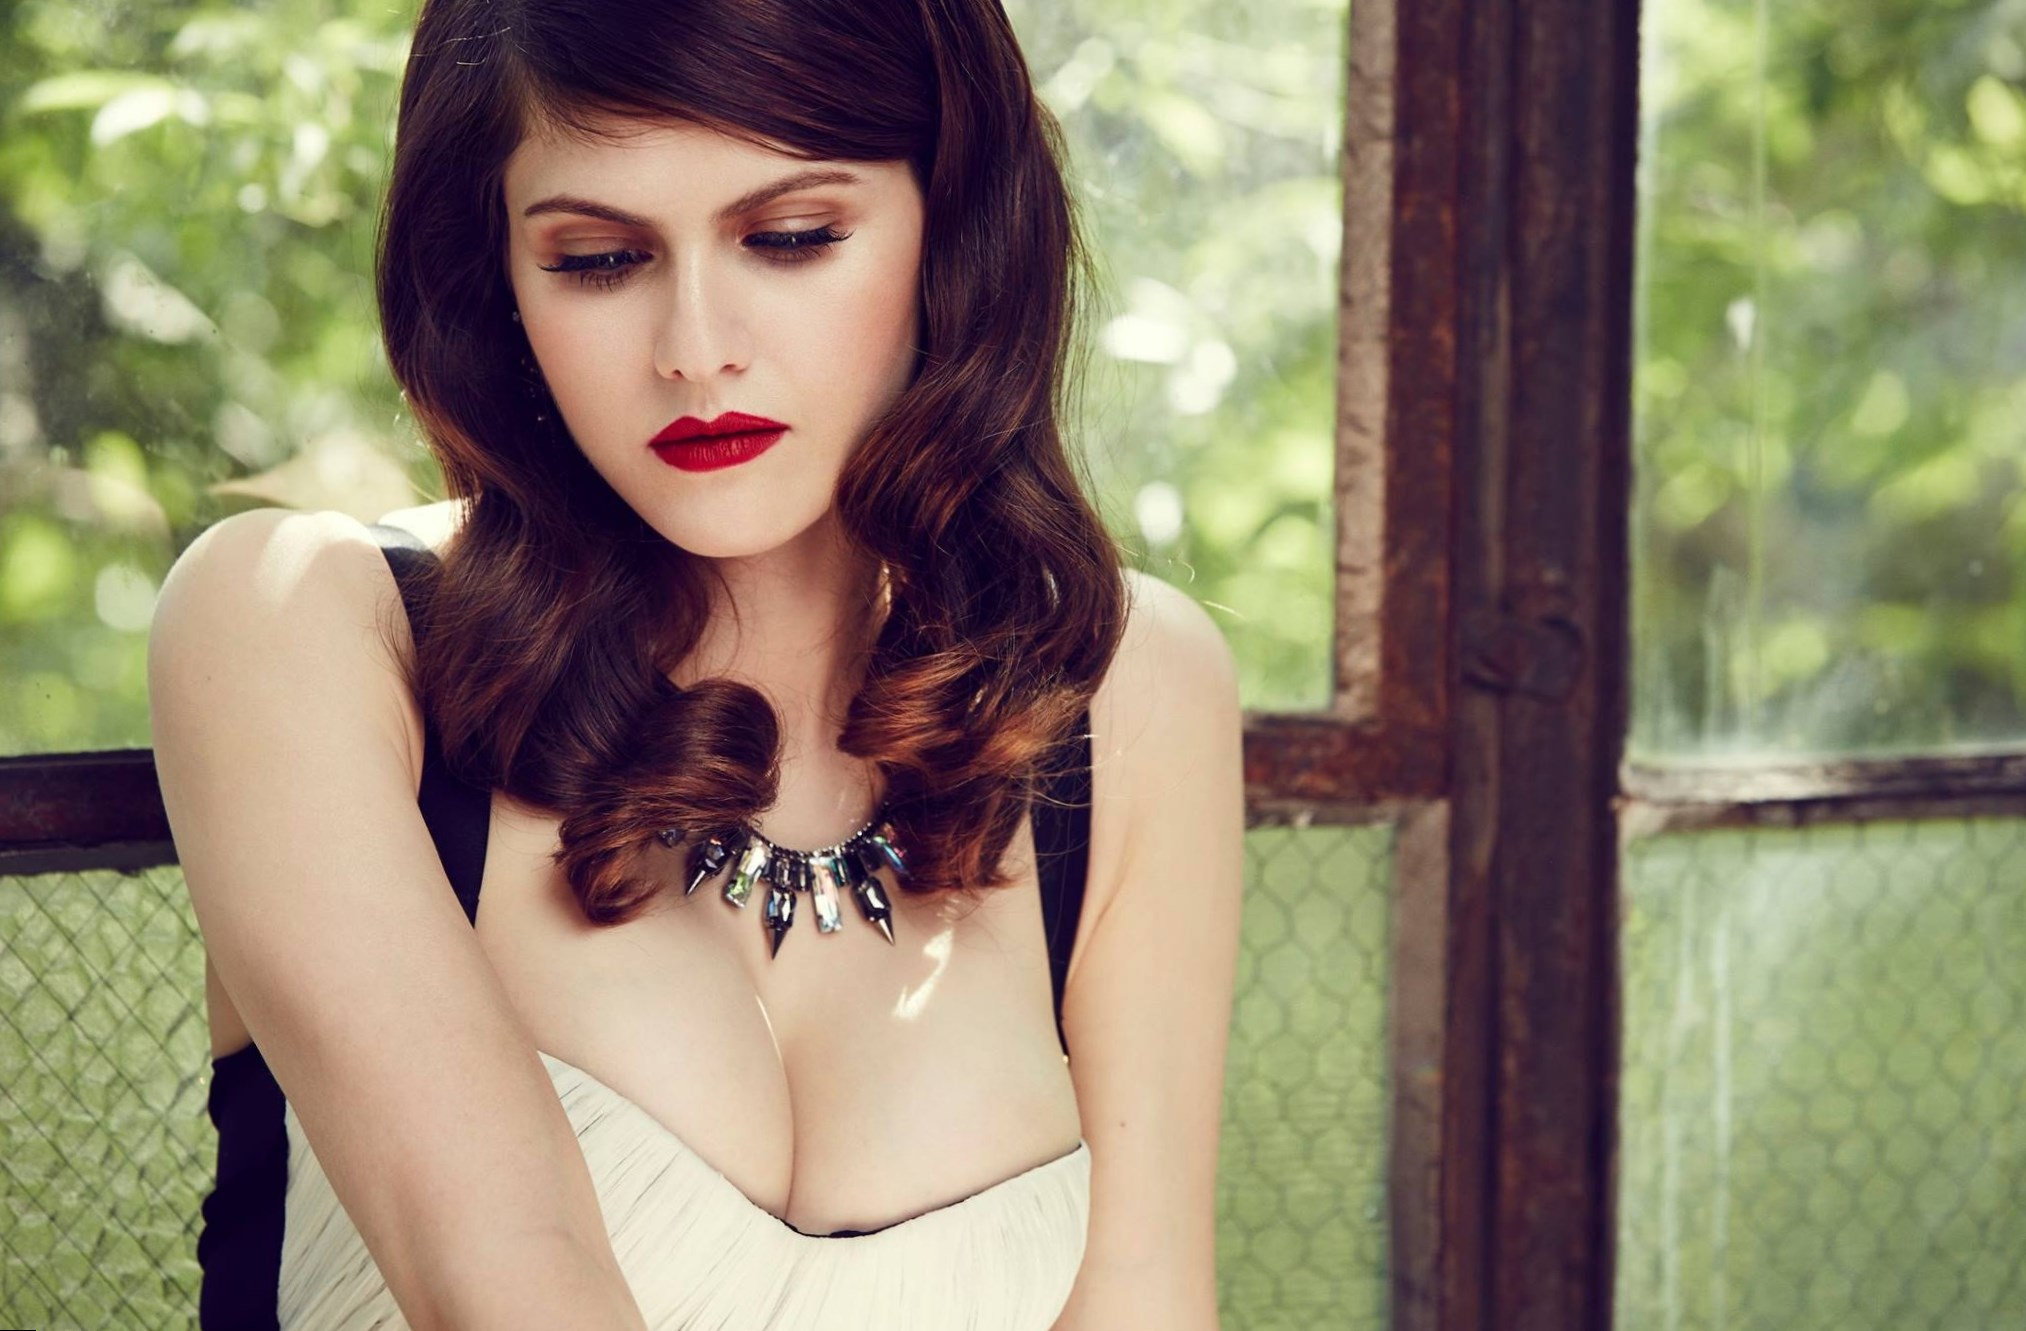 Alexandra Daddario - Height, Weight and Body Measurements